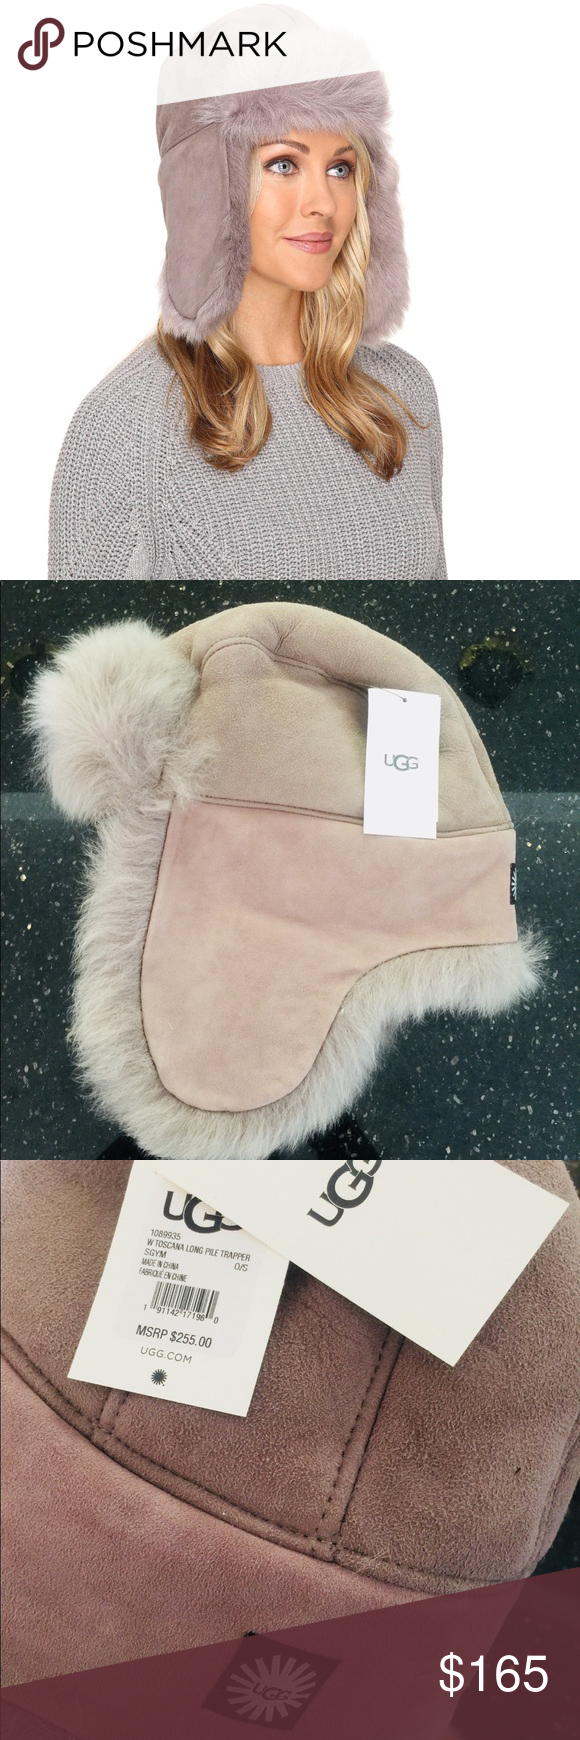 b54dfb9d6631e NWT  255 UGG Xmas Toscana trapper Ushanka hat OS Perfect Xmas gift for a  woman that s